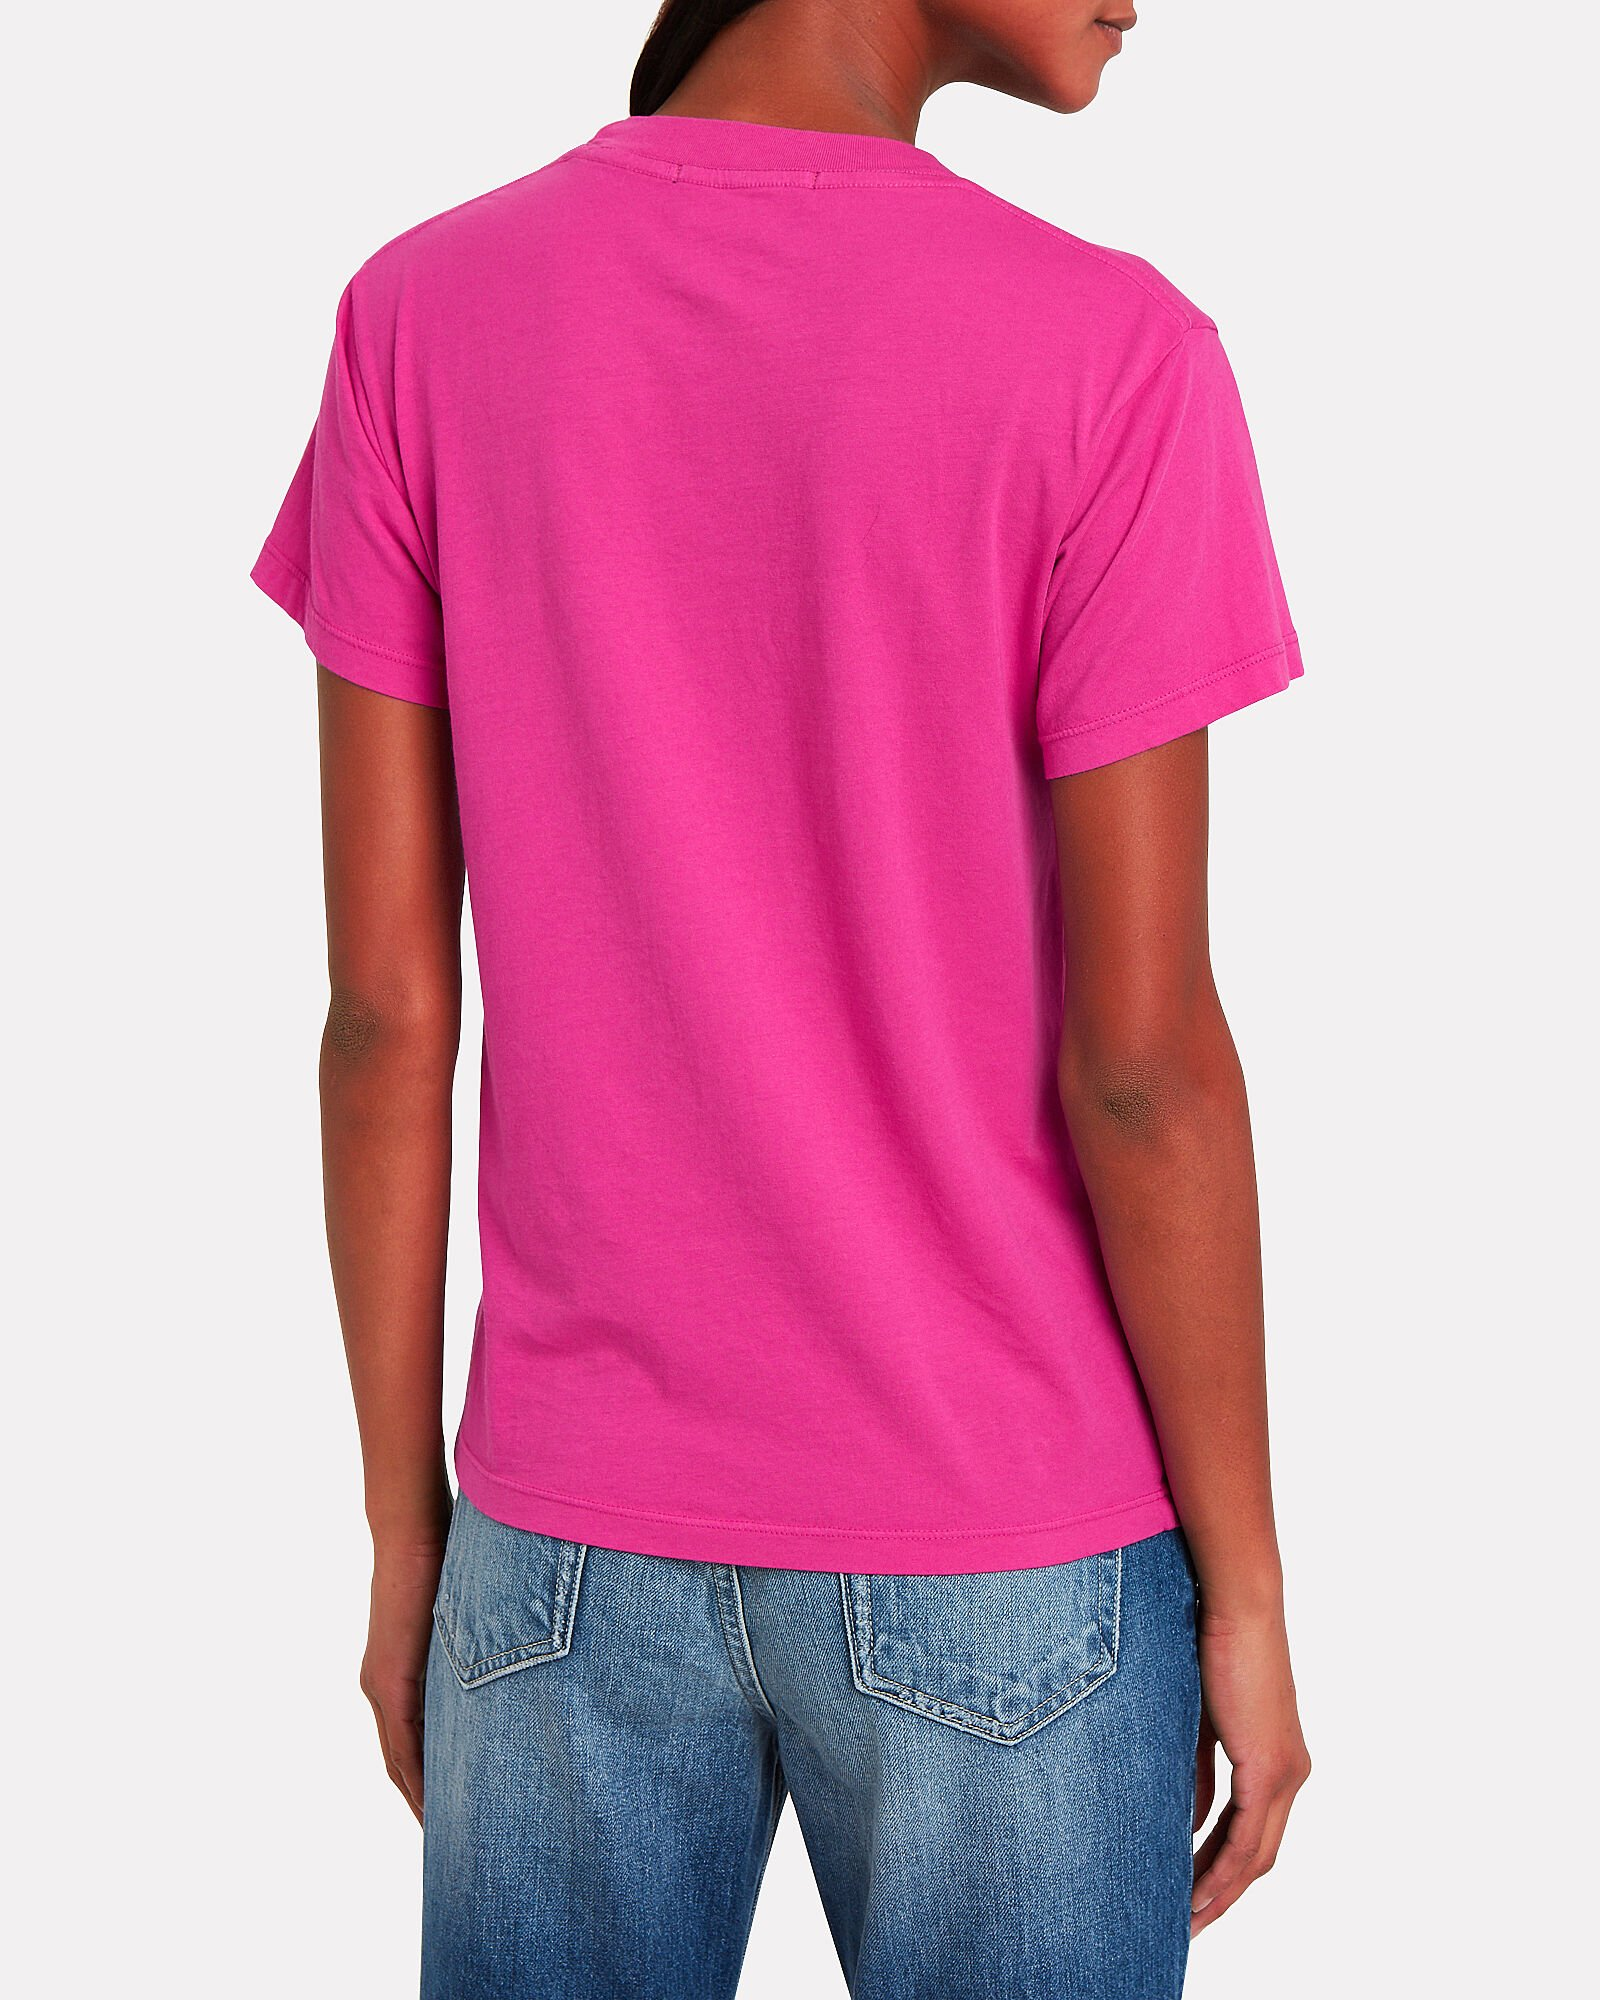 Los Angeles Graphic T-Shirt, PINK, hi-res